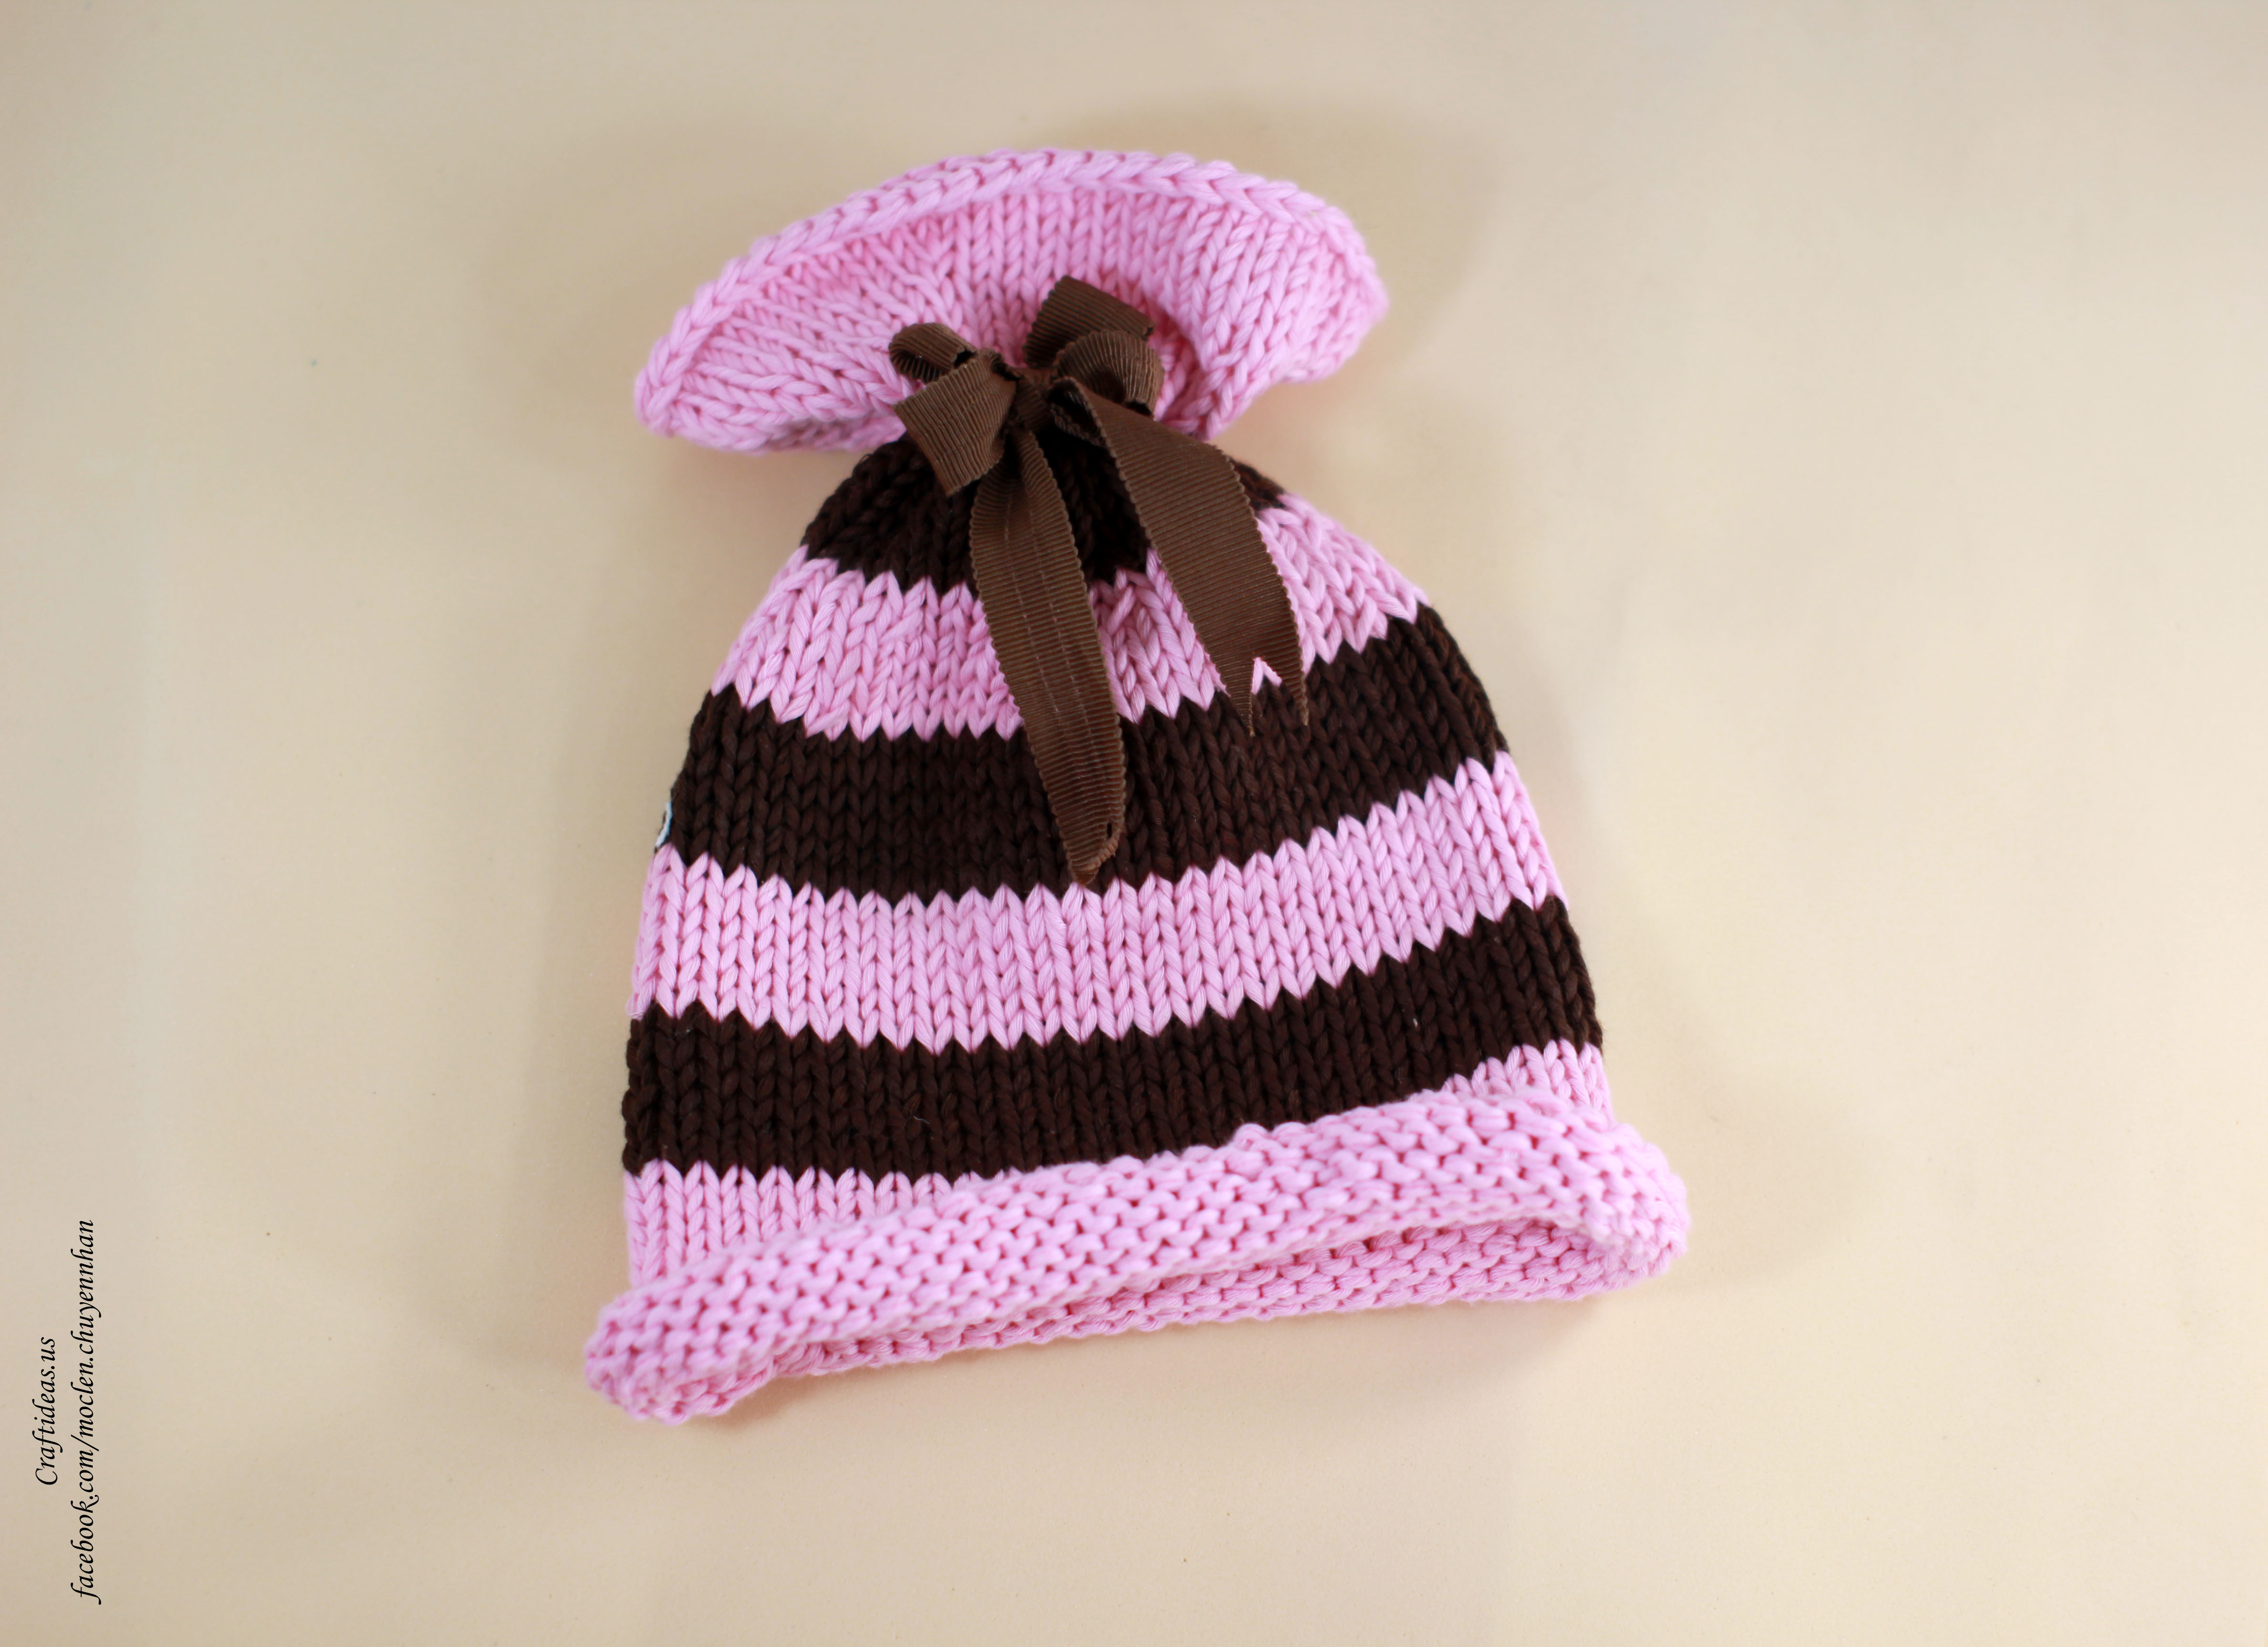 Knitting strip hat for little kids